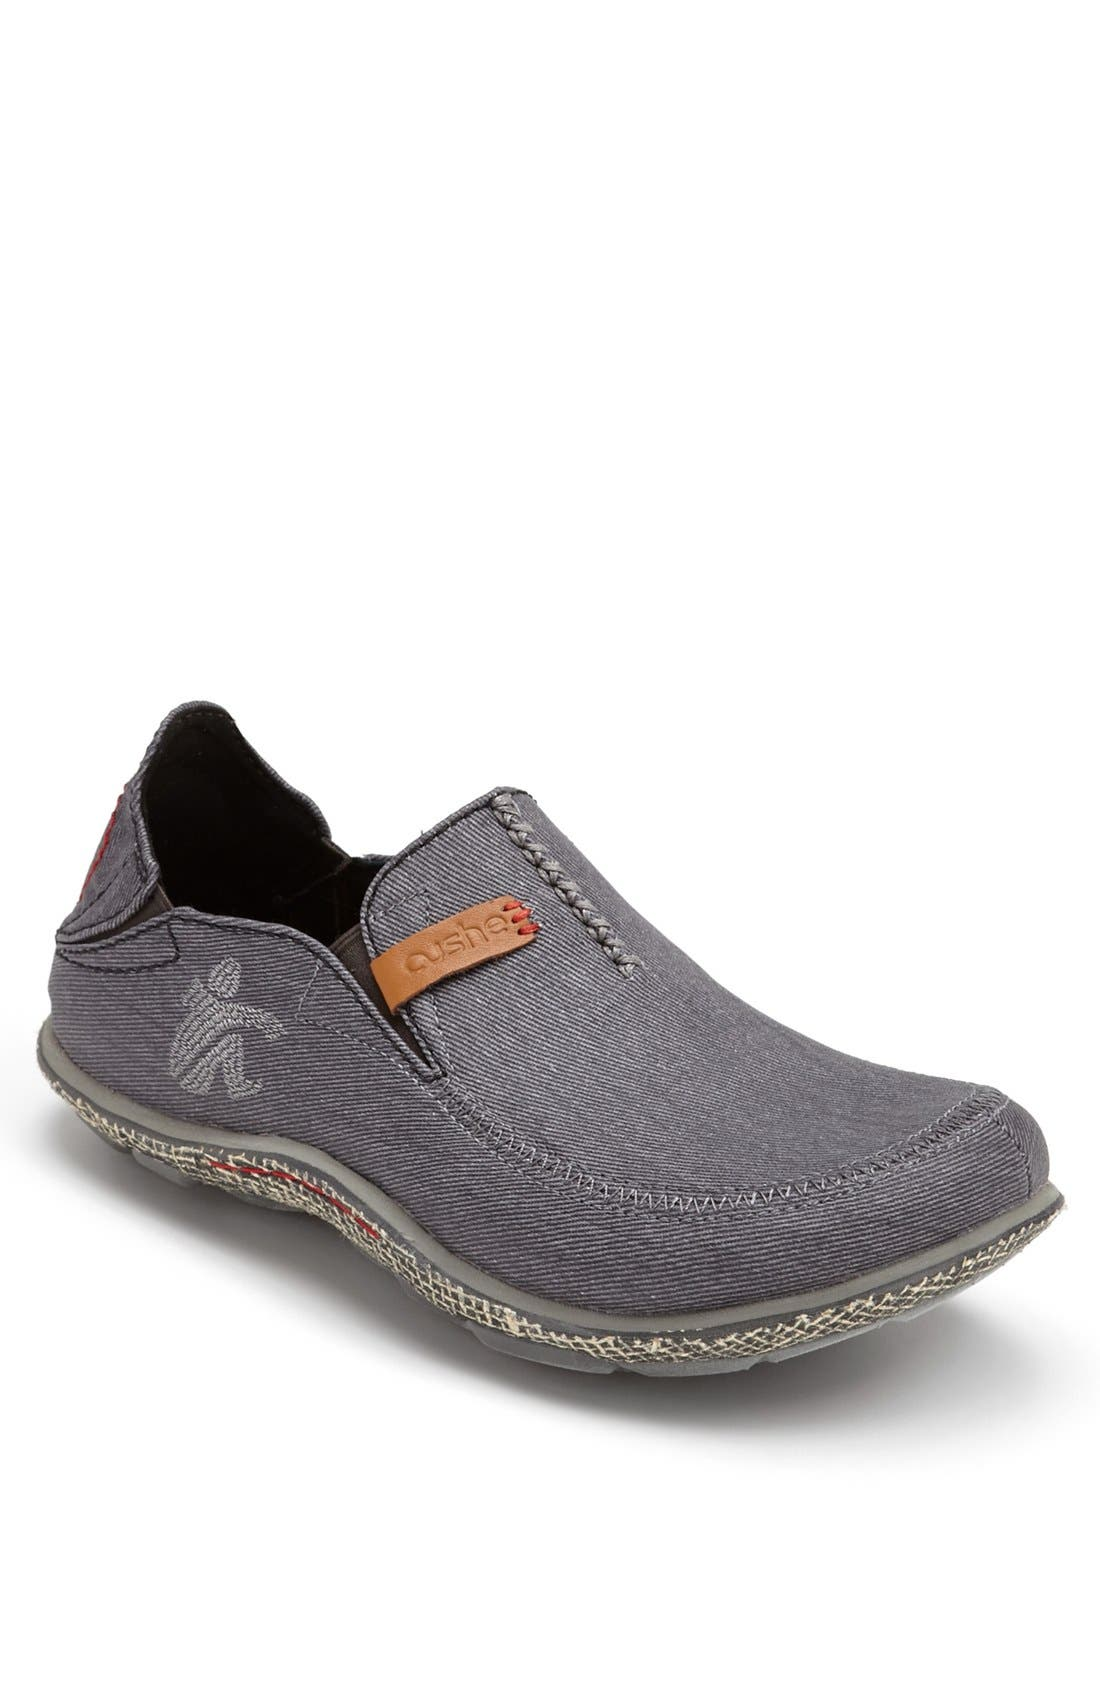 Alternate Image 1 Selected - Cushe 'Surf' Slip-On